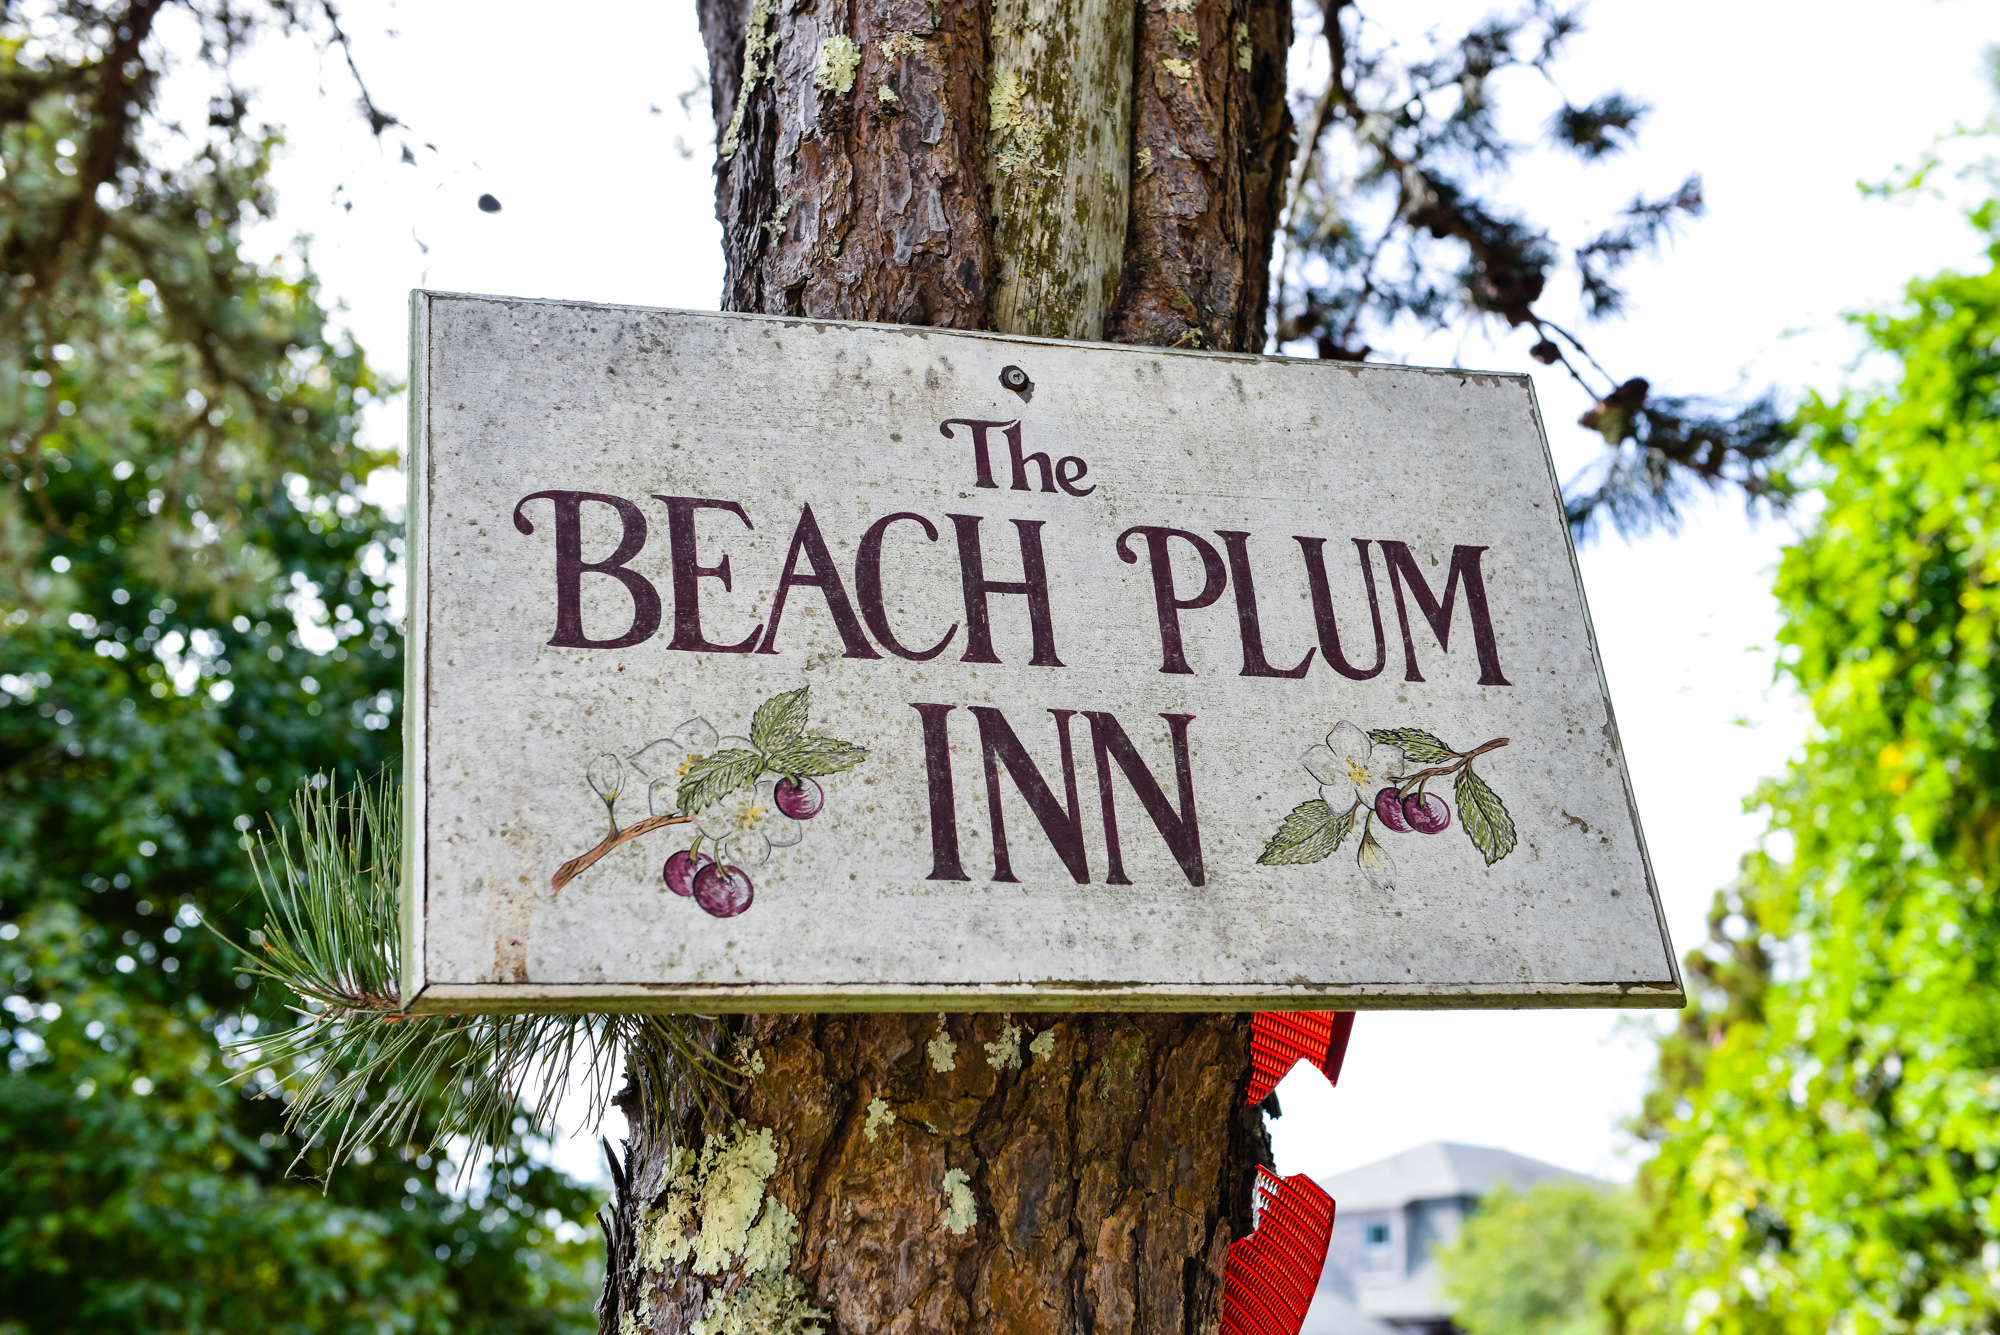 The sign at The Beach Plum Inn & Restaurant photo by David Welch Photography